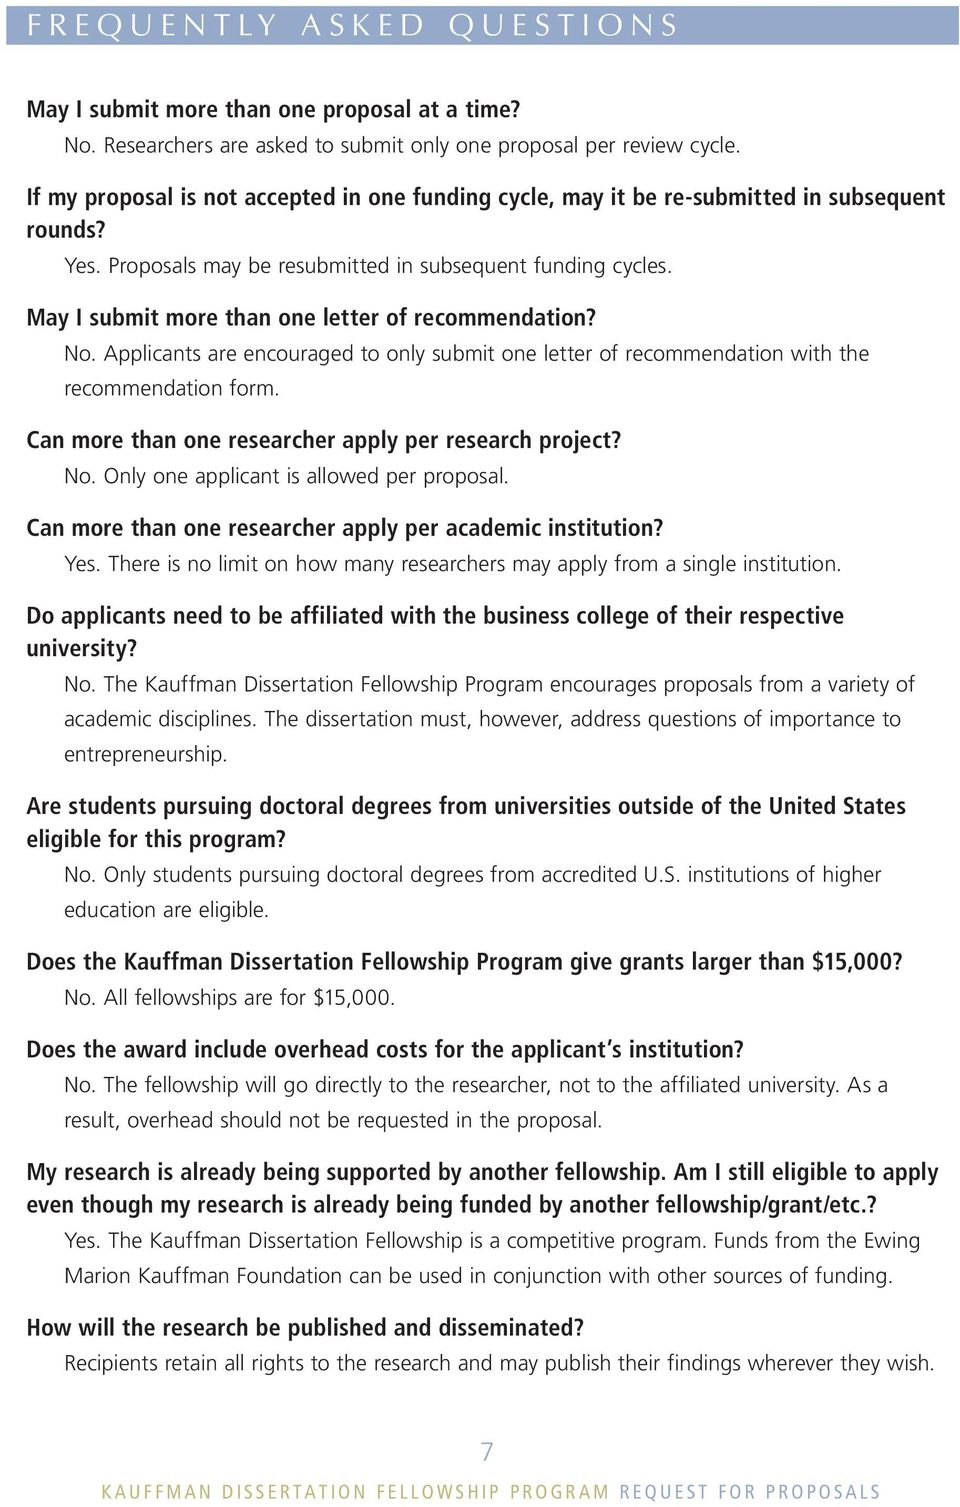 kauffman dissertation fellowship program